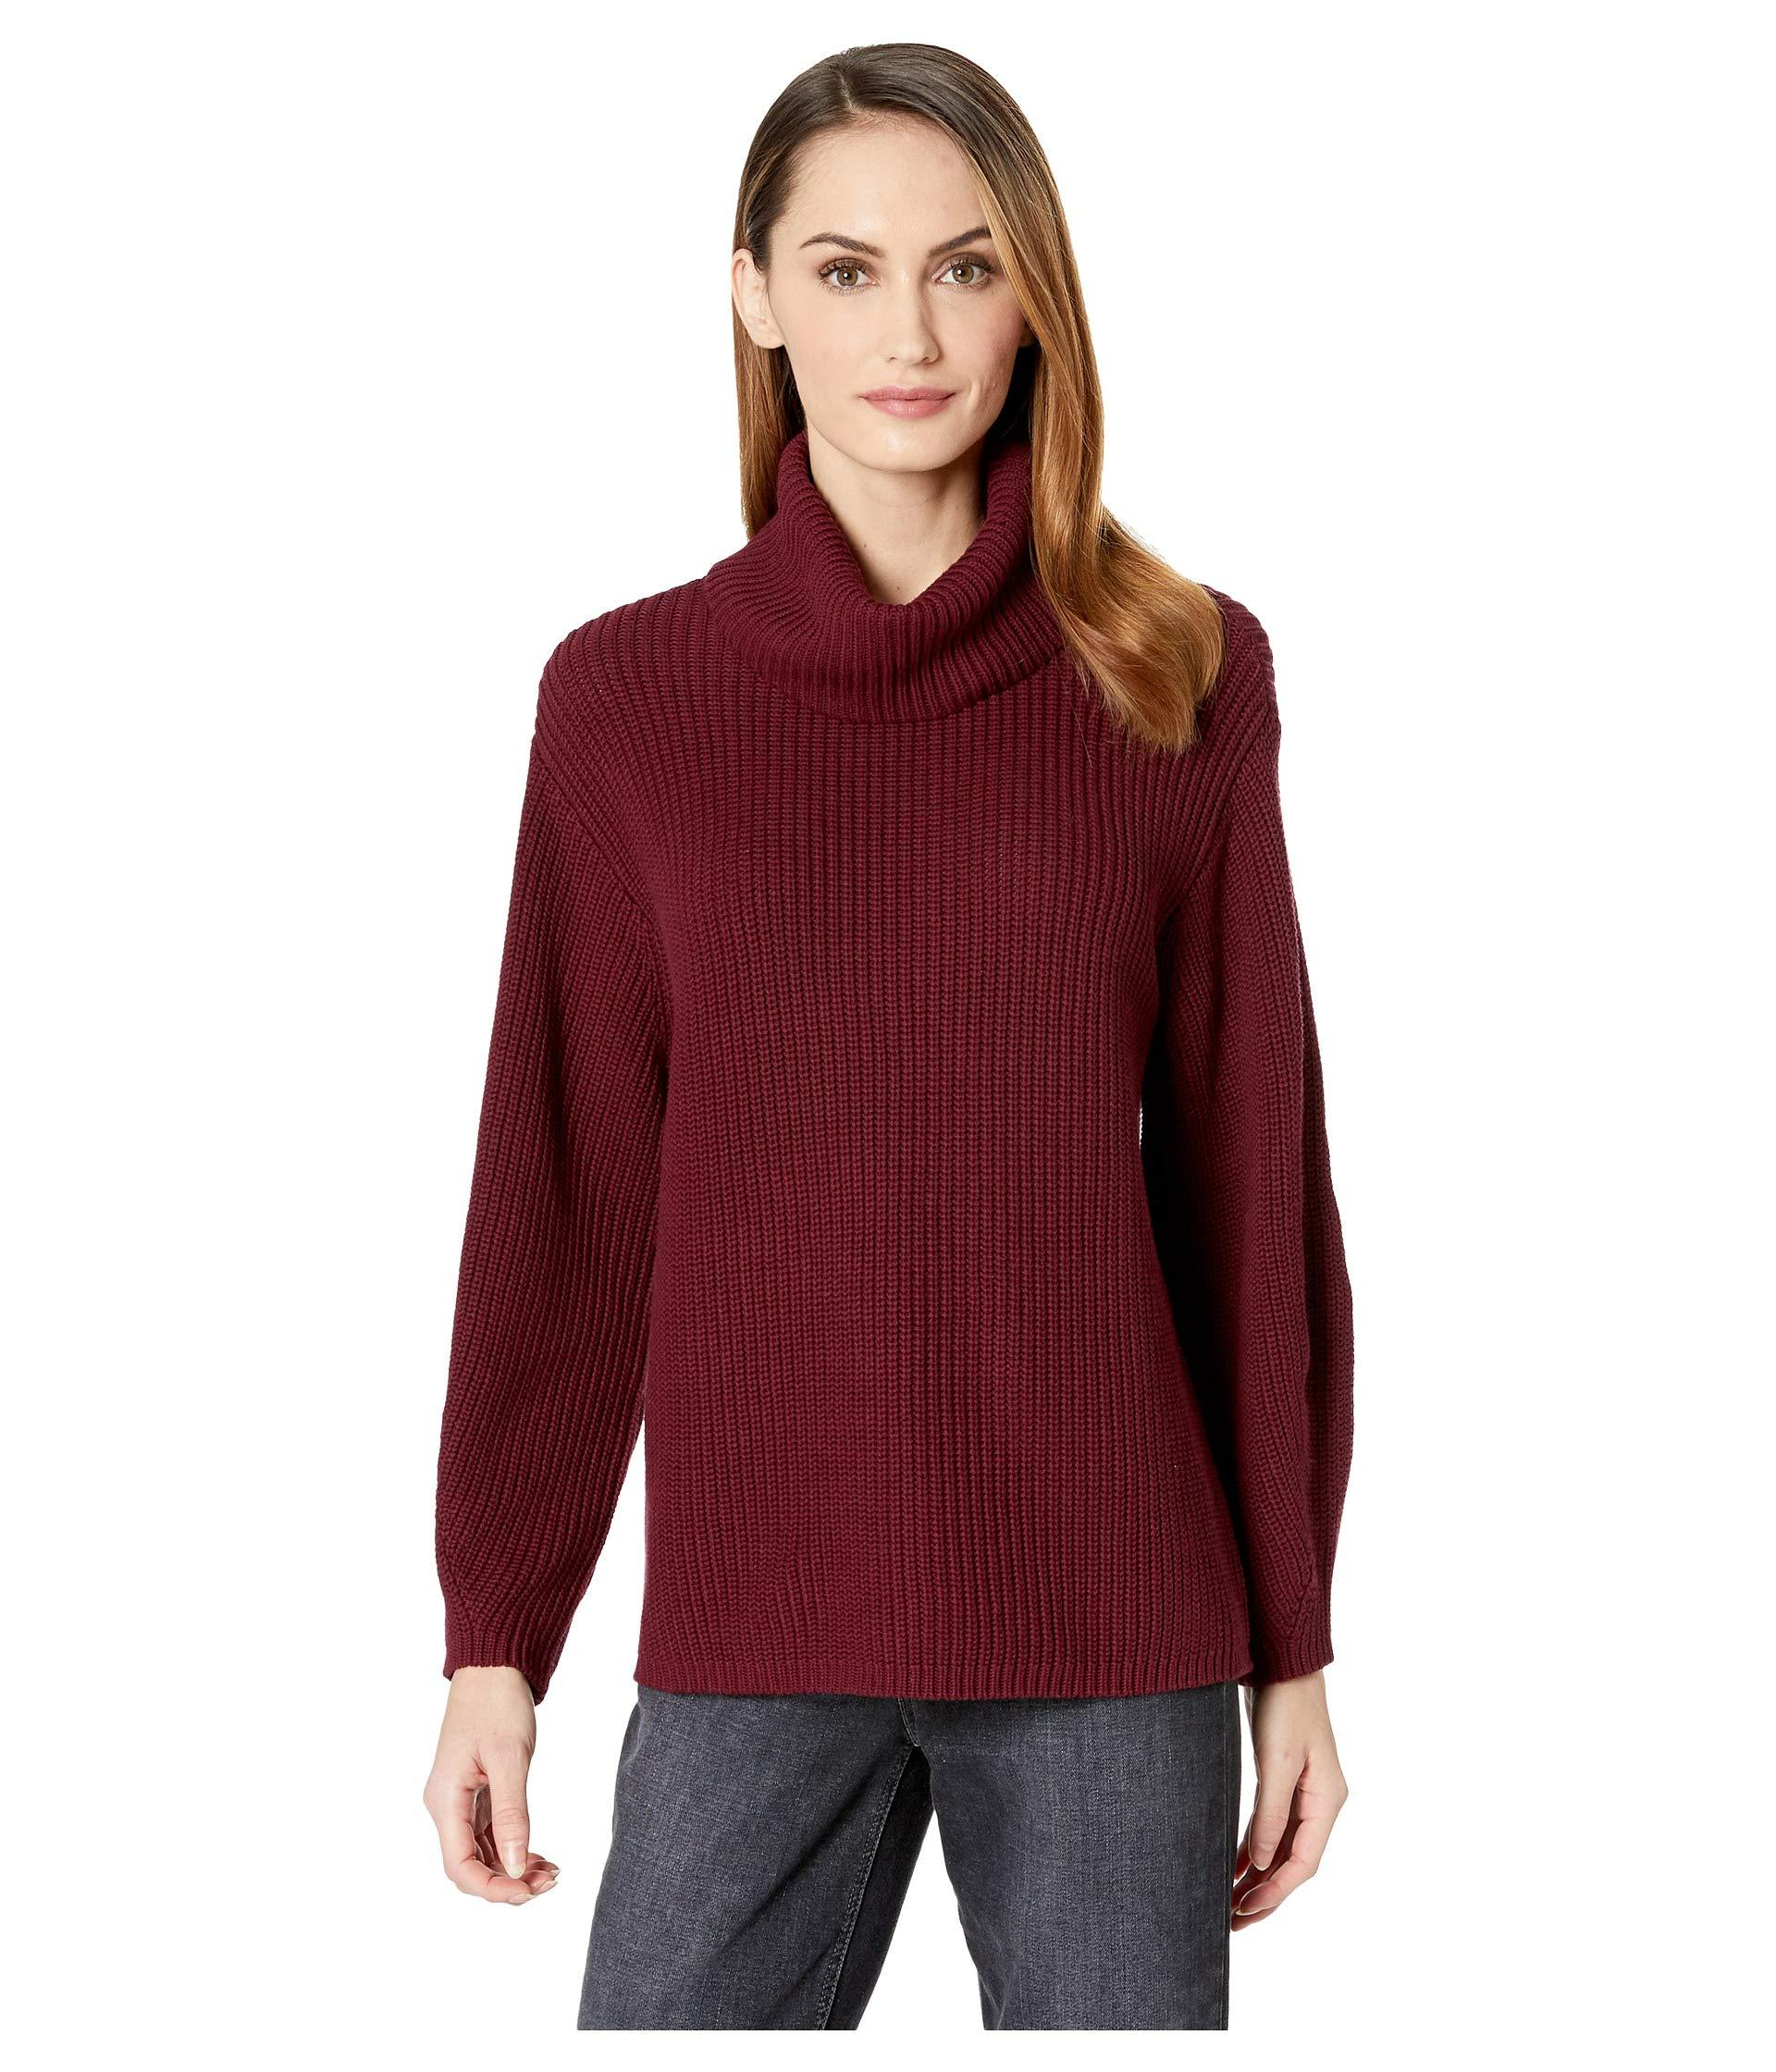 e5fd85a8f44e9 Vince Camuto. Women's Red Long Sleeve Rib Turtleneck Slouchy Sweater